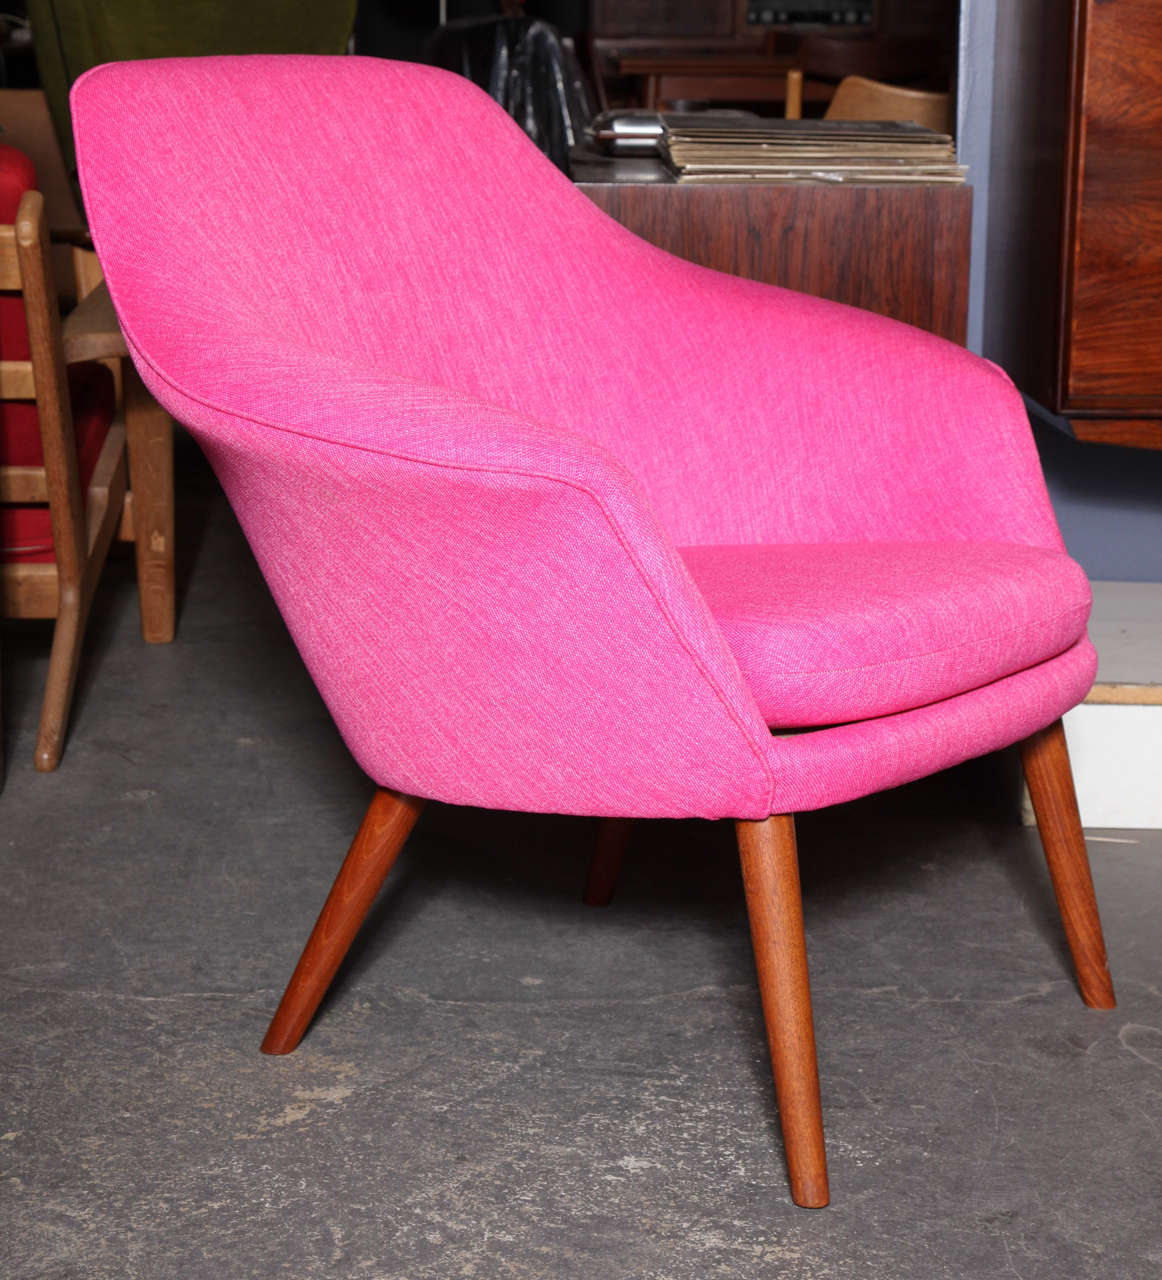 Pink Shell or Womb Chair by Hans Olsen 4